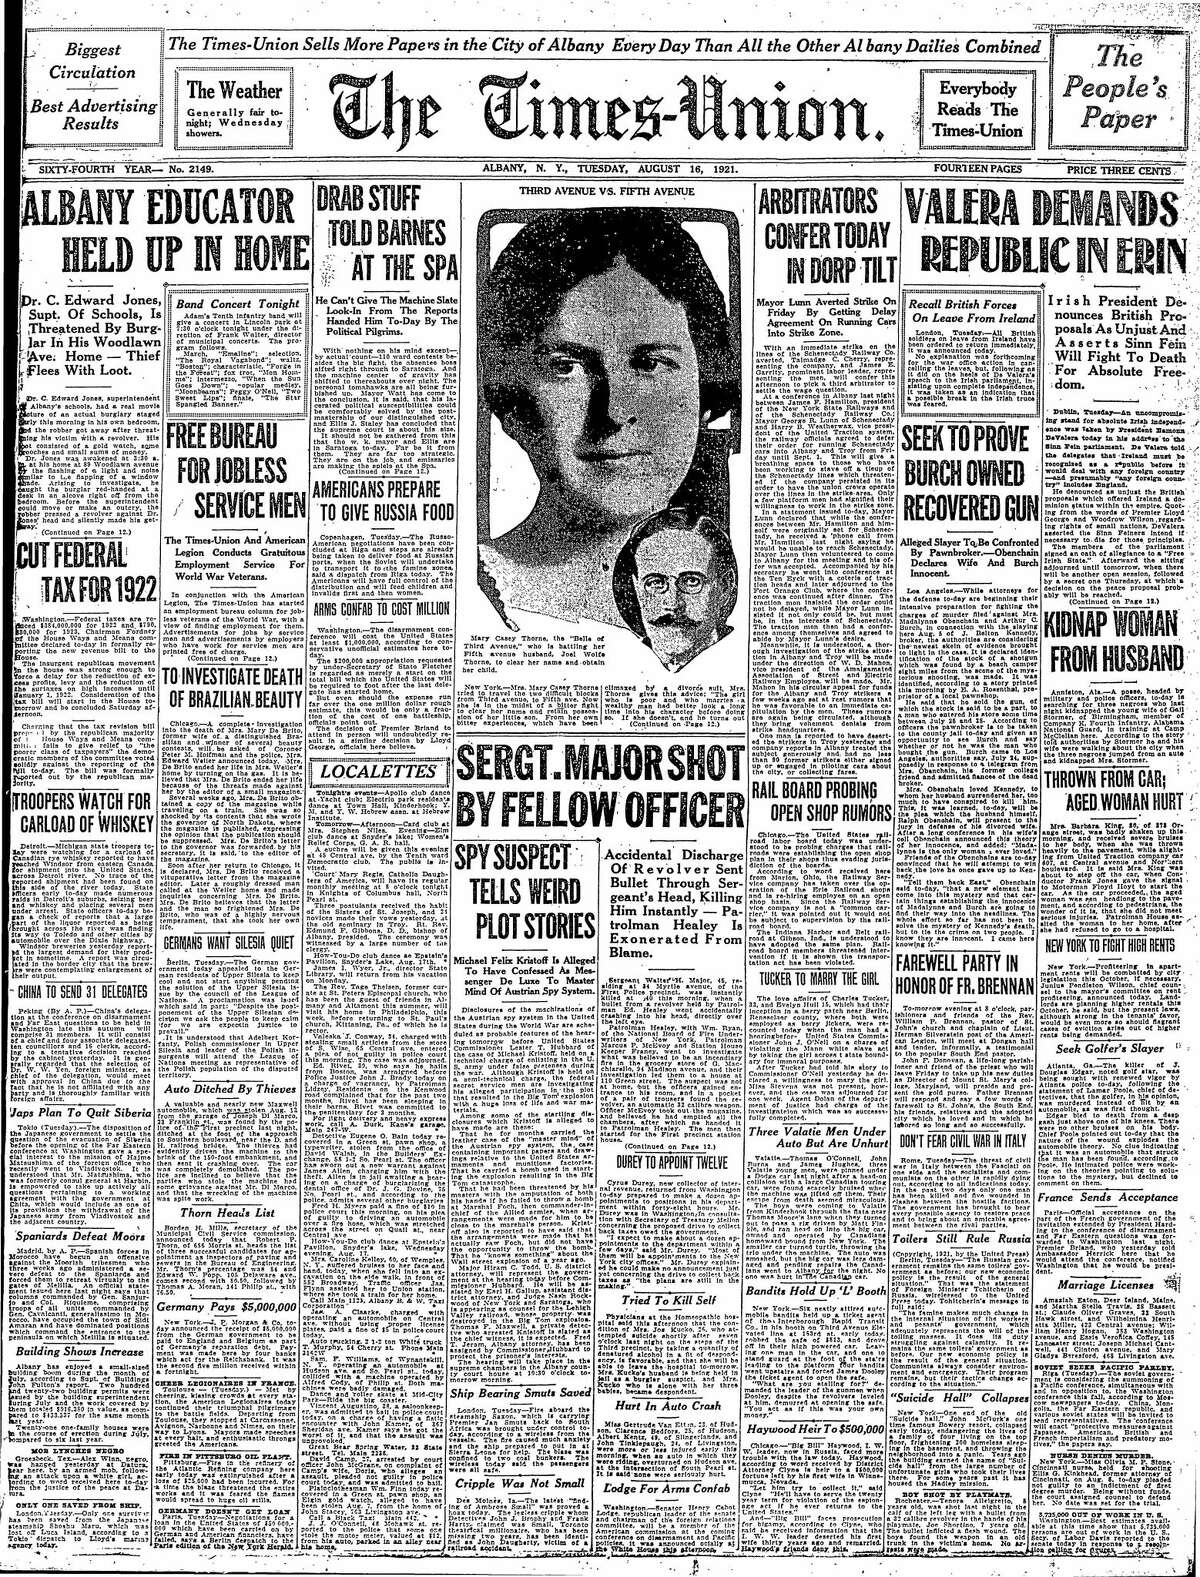 Front page of the Times Union, Aug. 16, 1921.